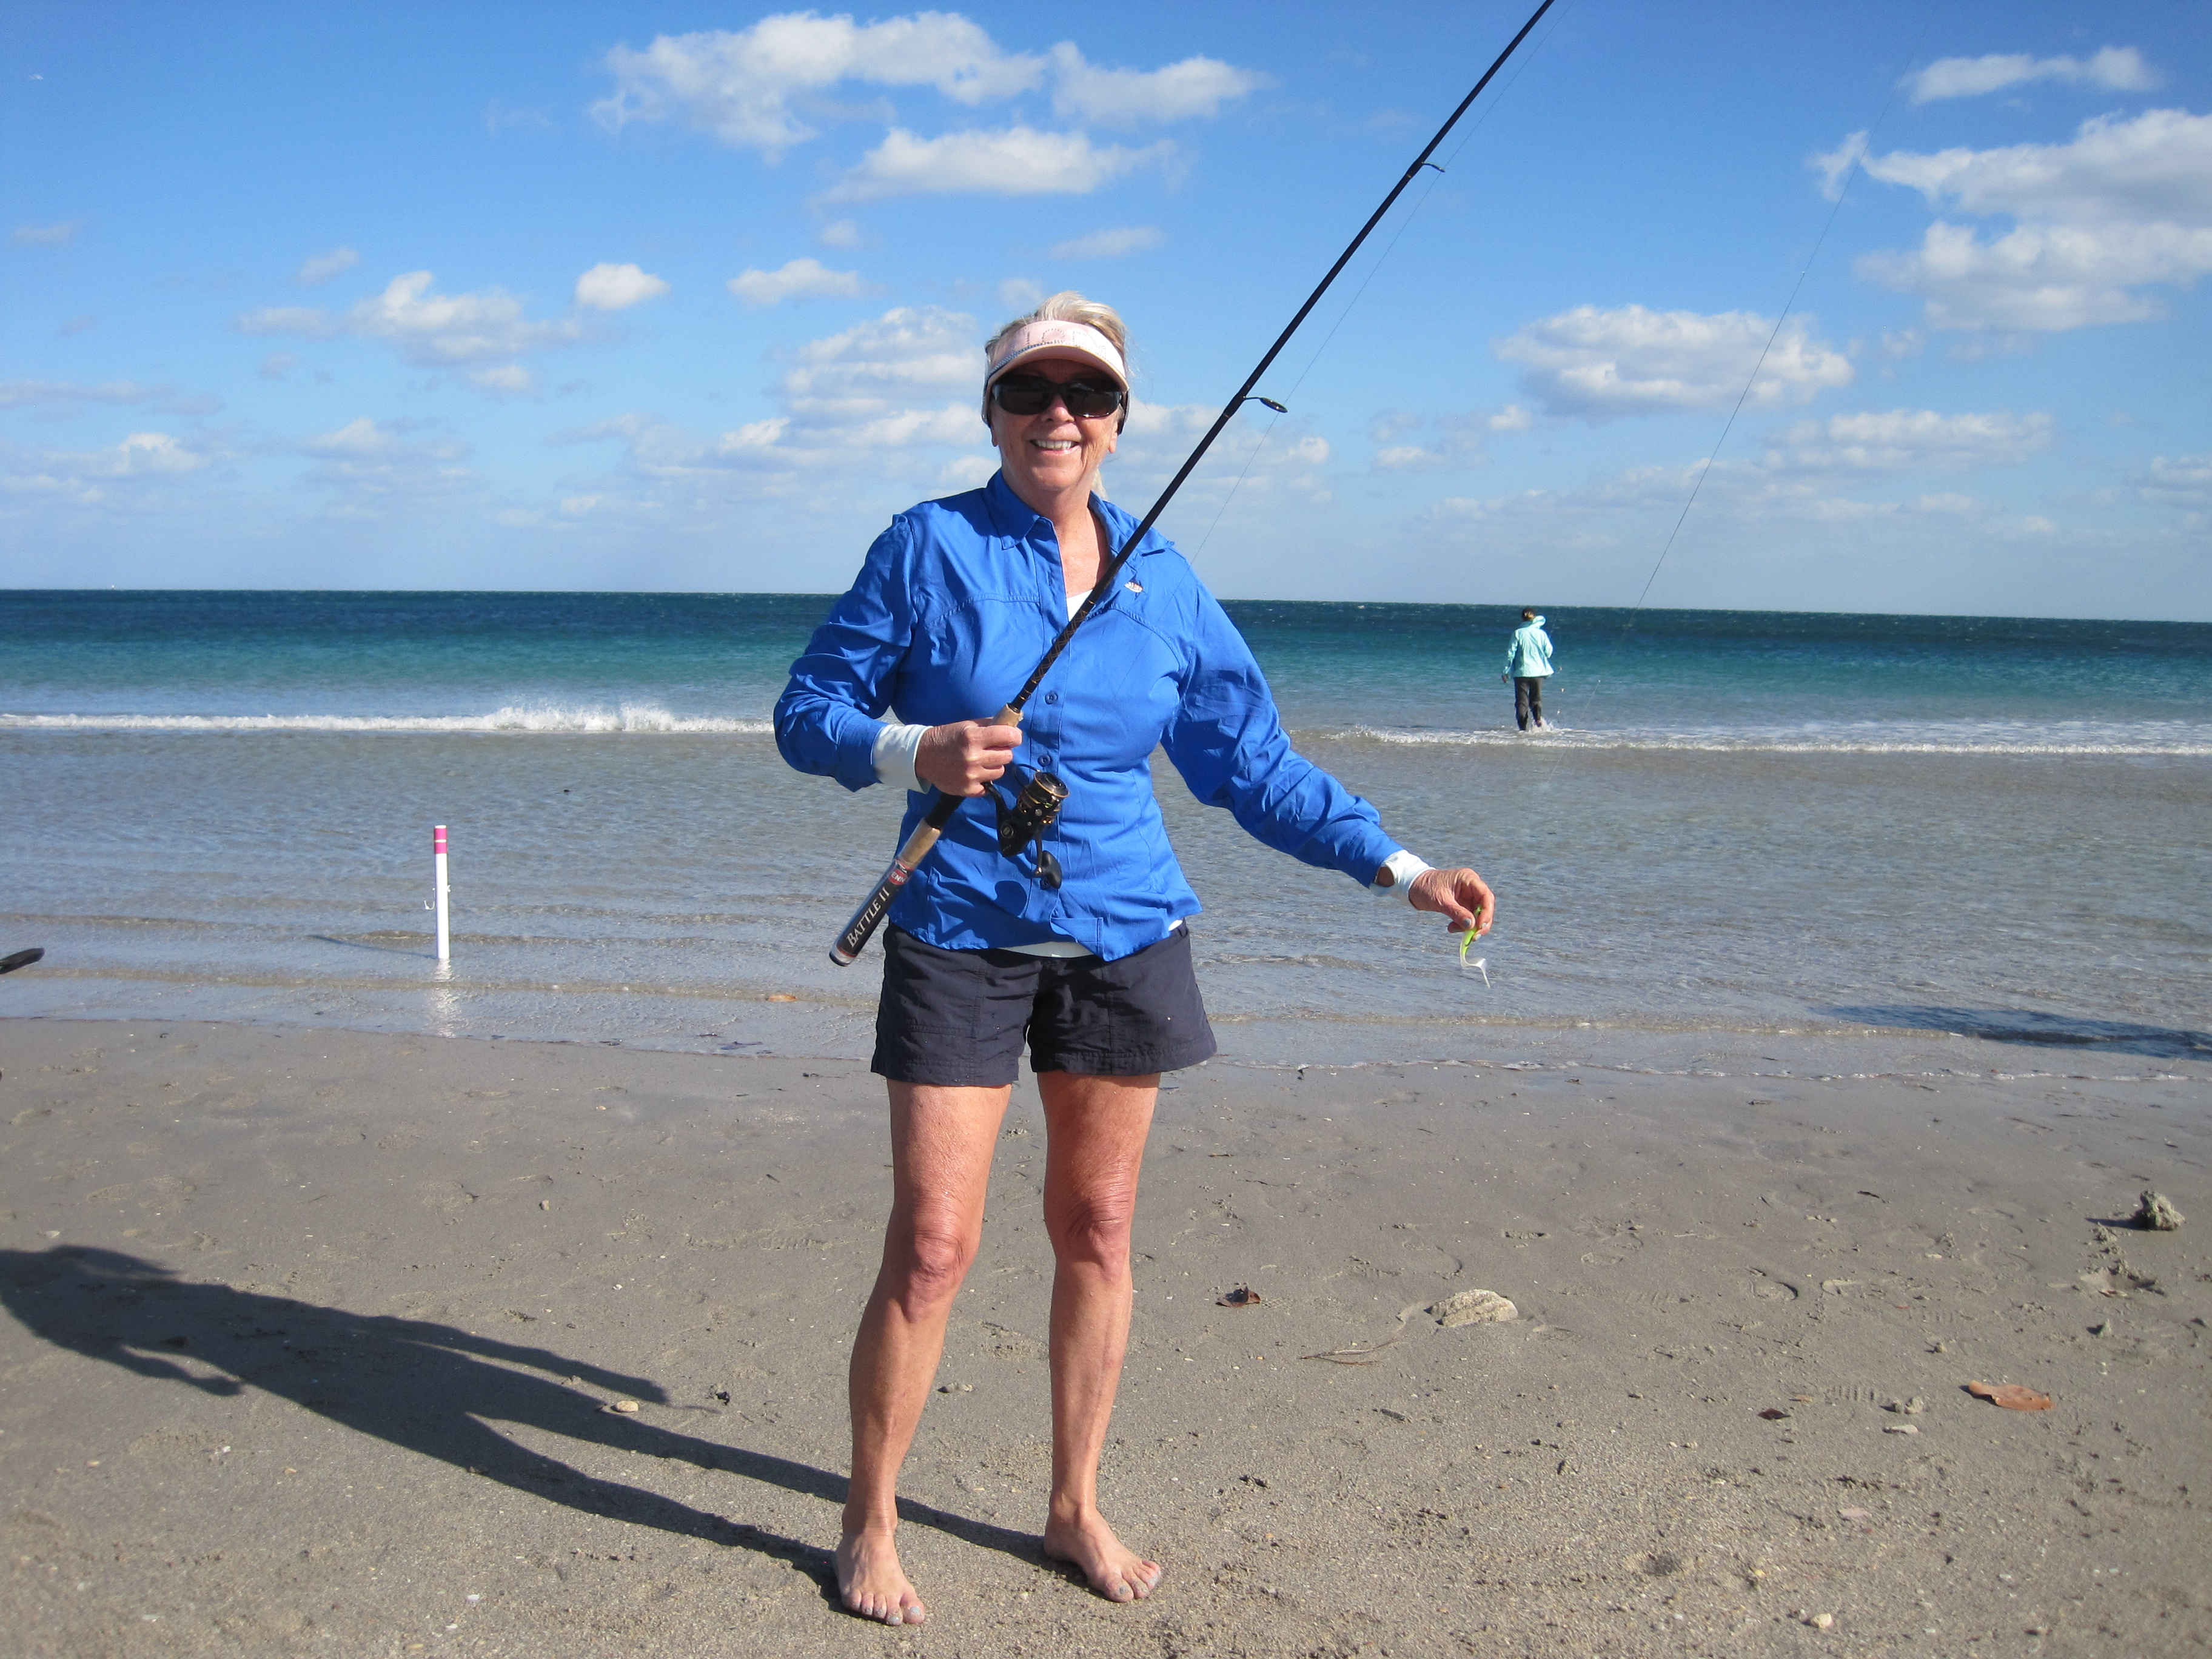 Llgf surf casting clinic in stuart march 19 ladies let for Ladies fishing rods